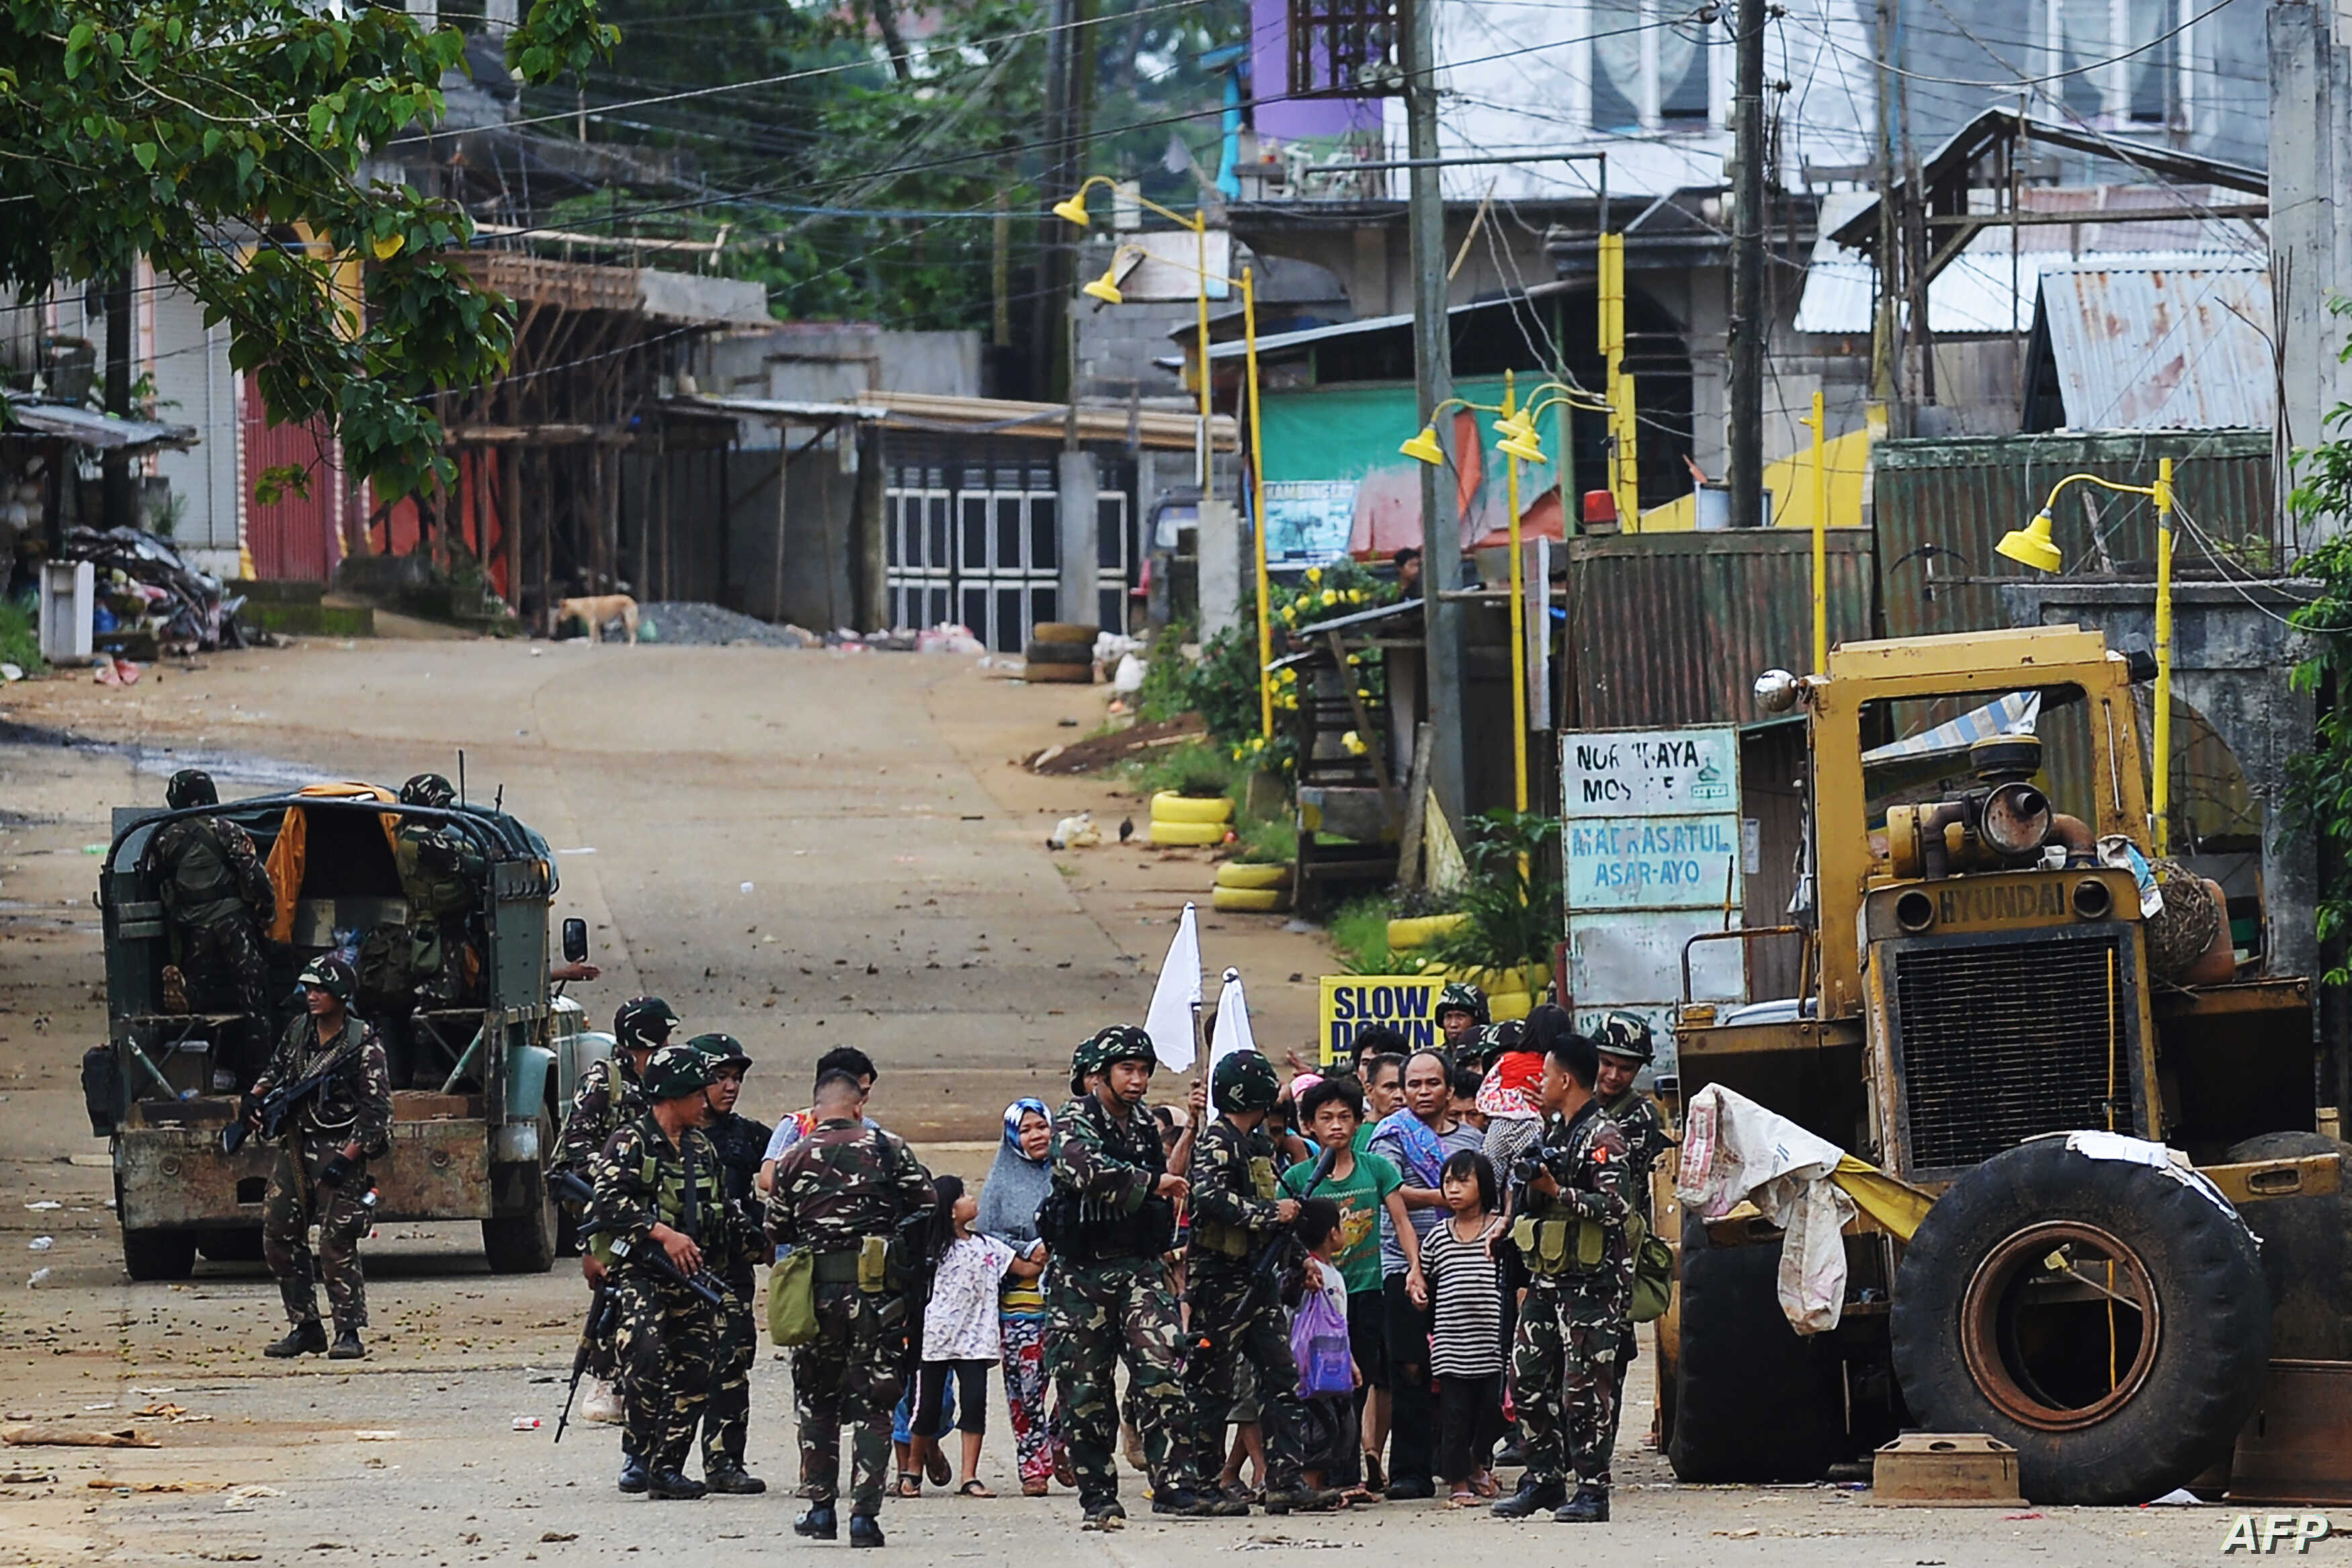 Philippine troops escort civilians, as a military truck covers them from sniper fire, in a village on the outskirts of Marawi on the southern island of Mindanao, May 31, 2017, as fighting between government forces and Islamist militants continues.